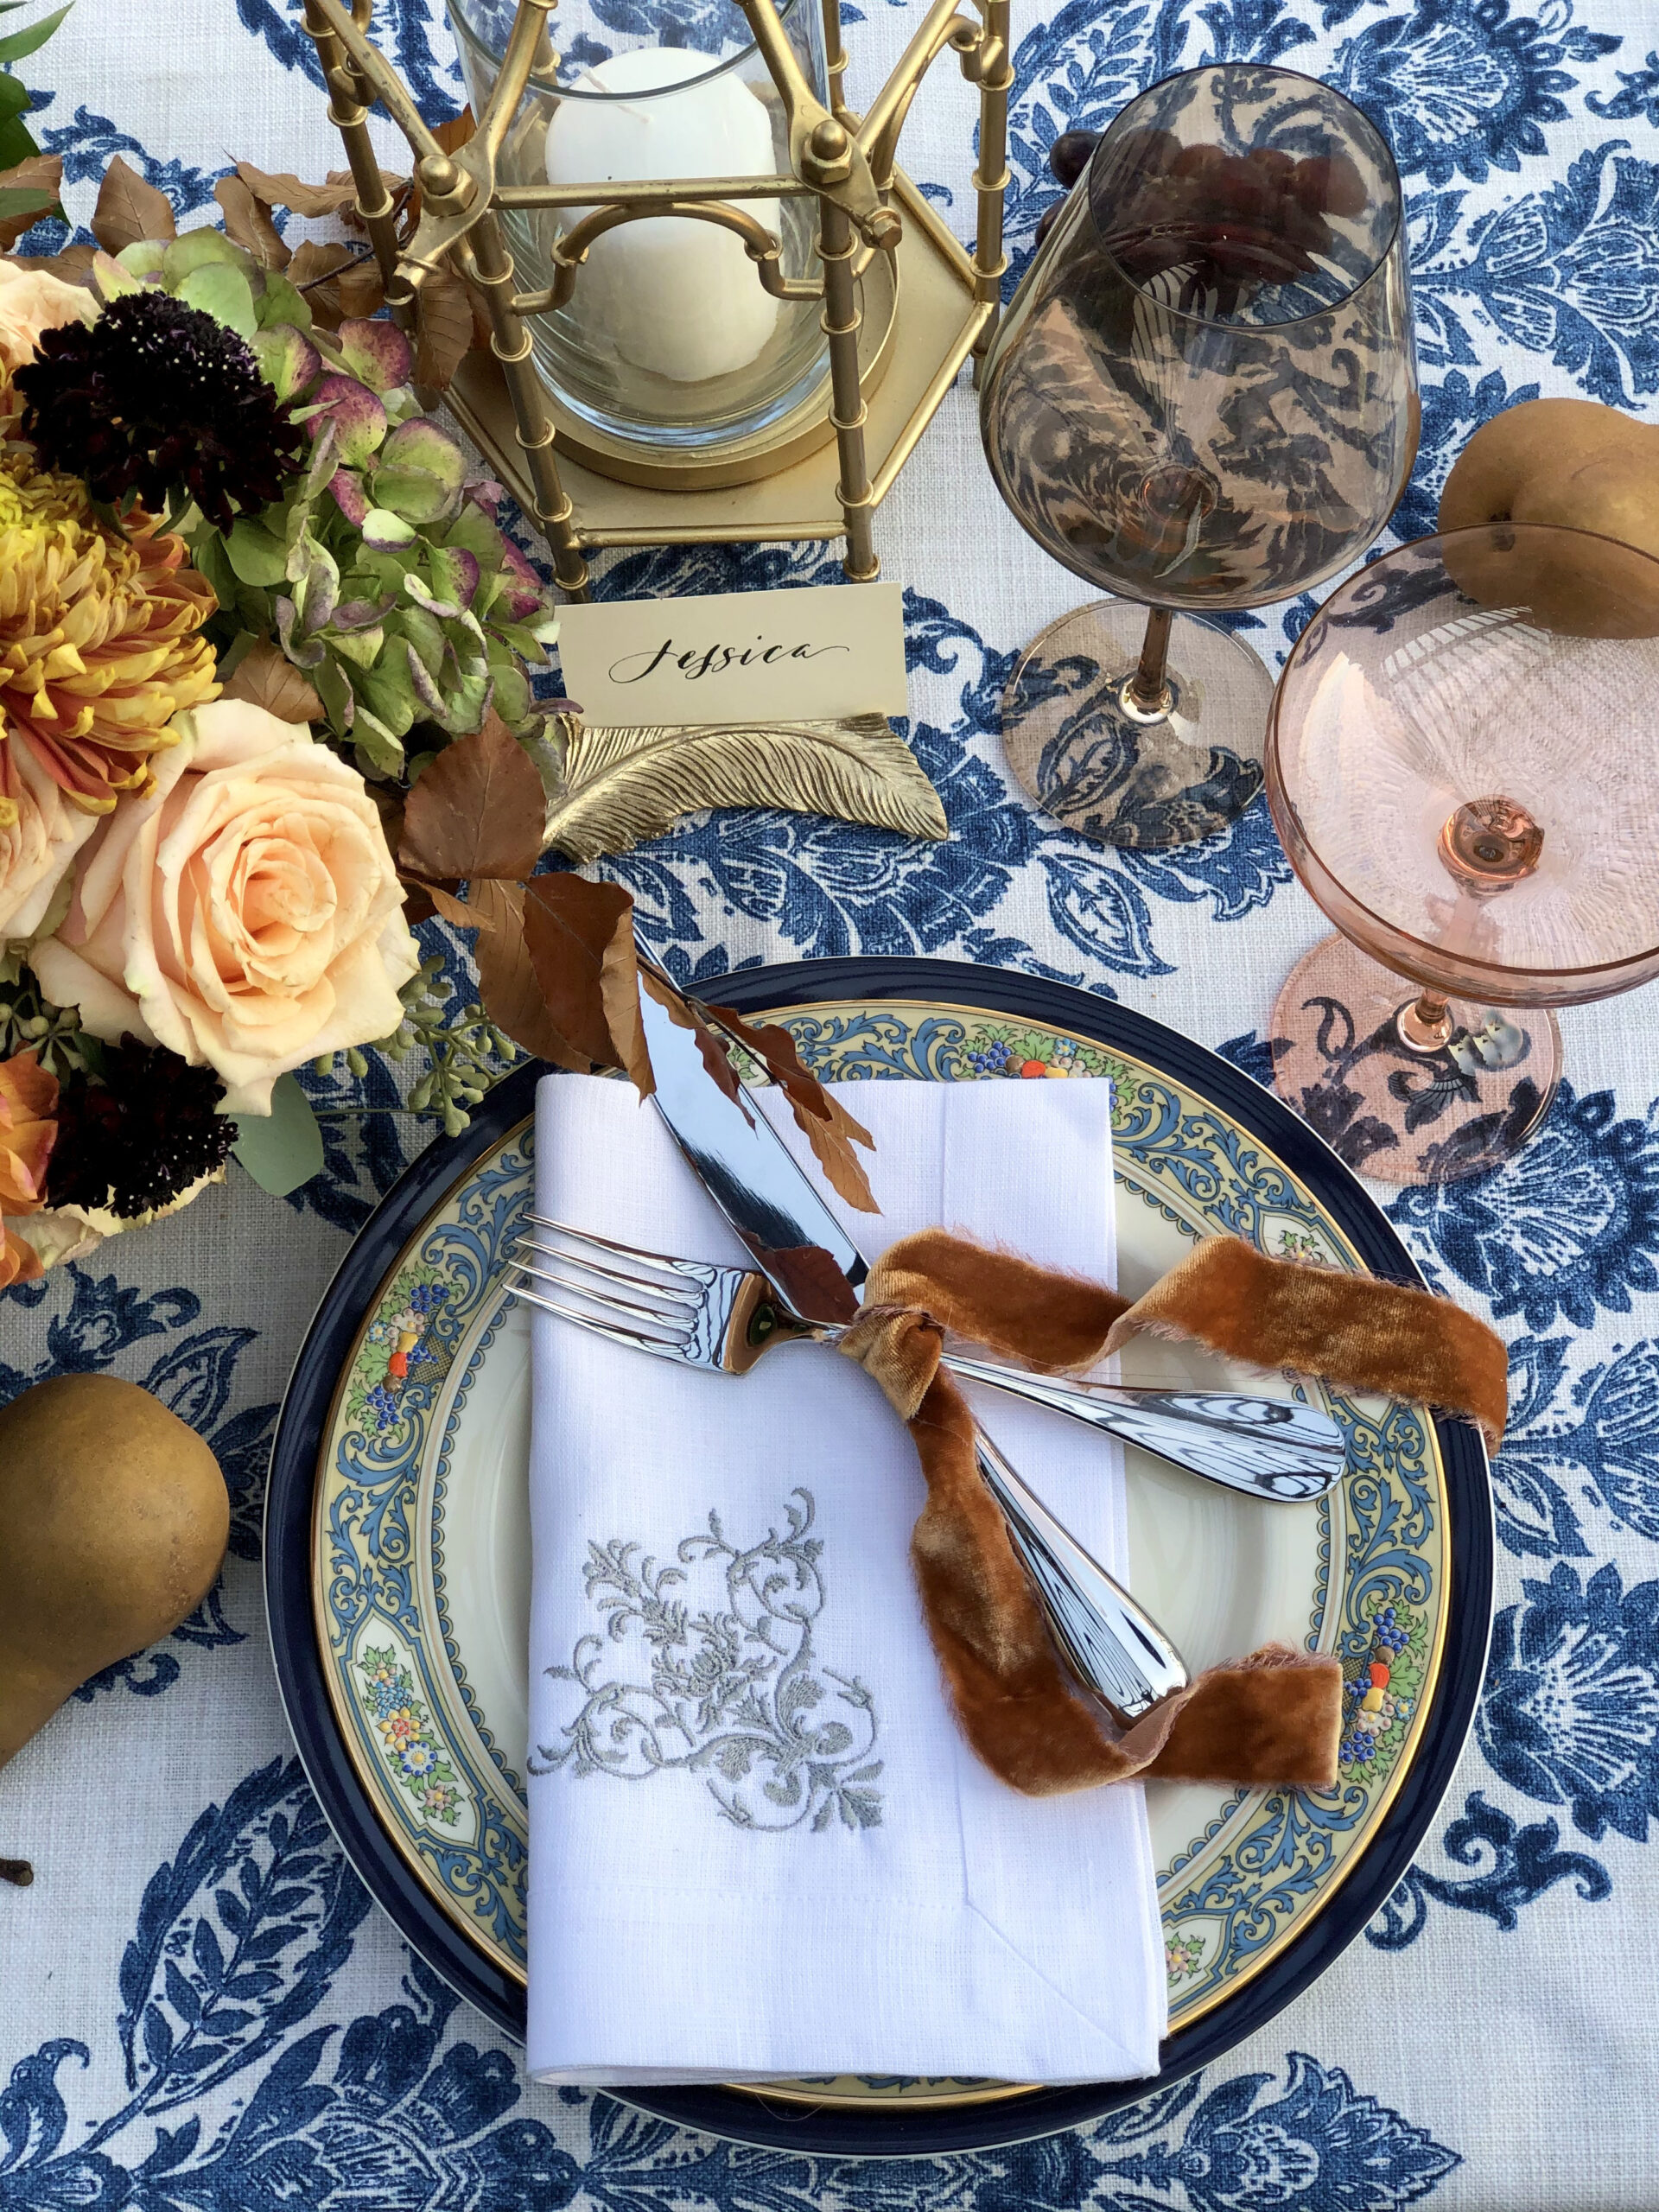 Thanksgiving Place setting with Lenox Autumn Plates and Estelle glasses